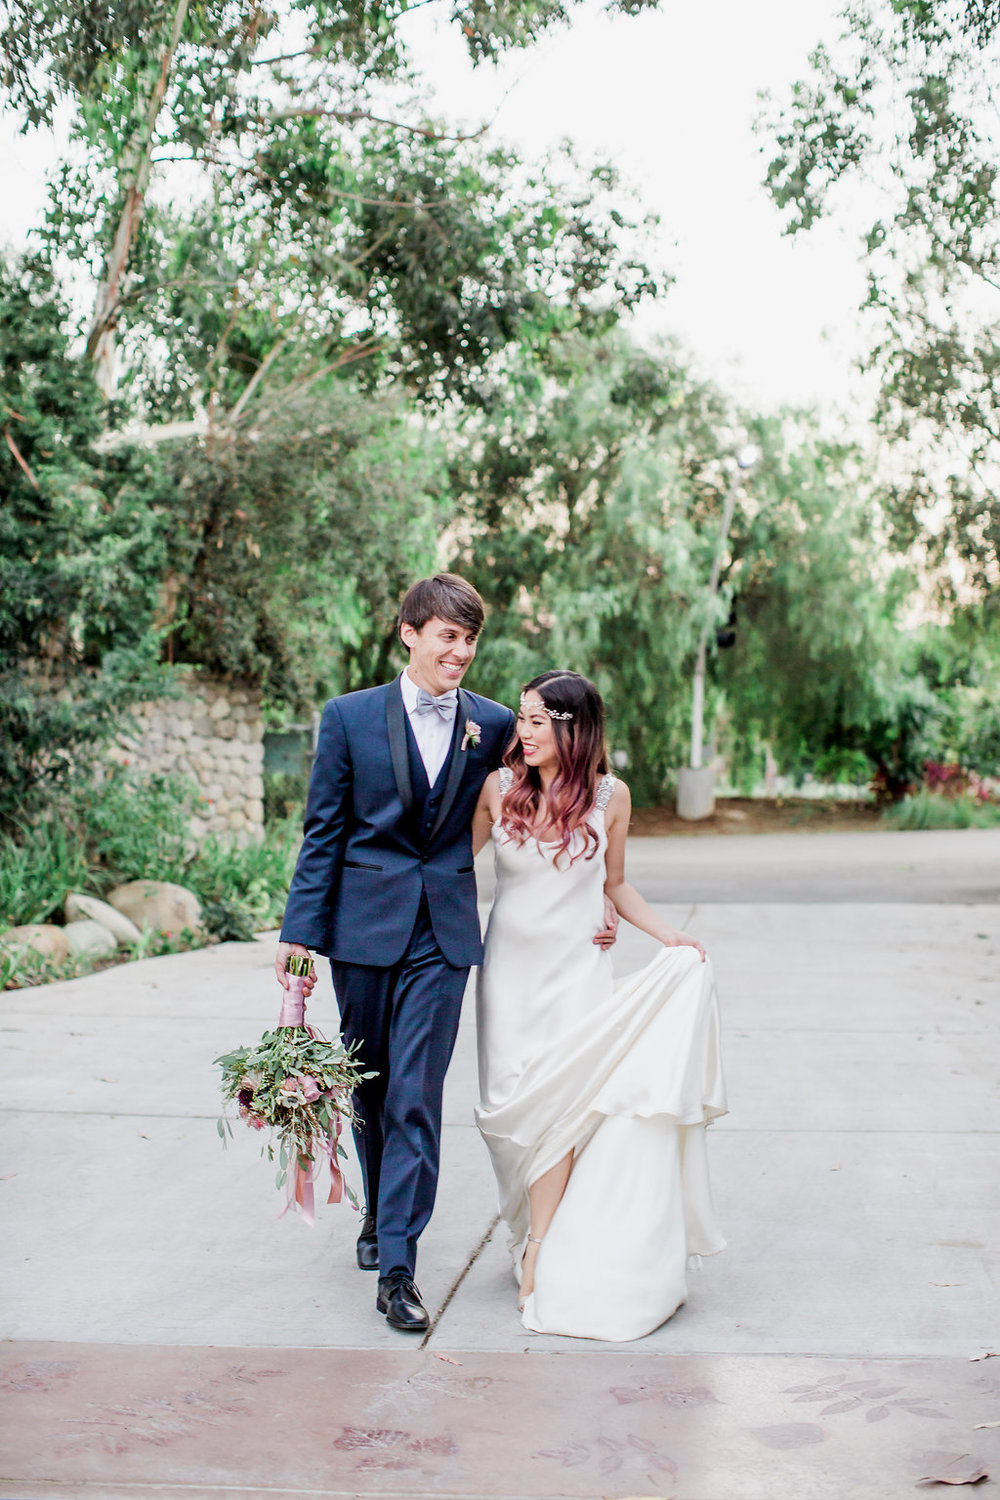 Eden Gardens Wedding Photographer- Moorpark, Ca